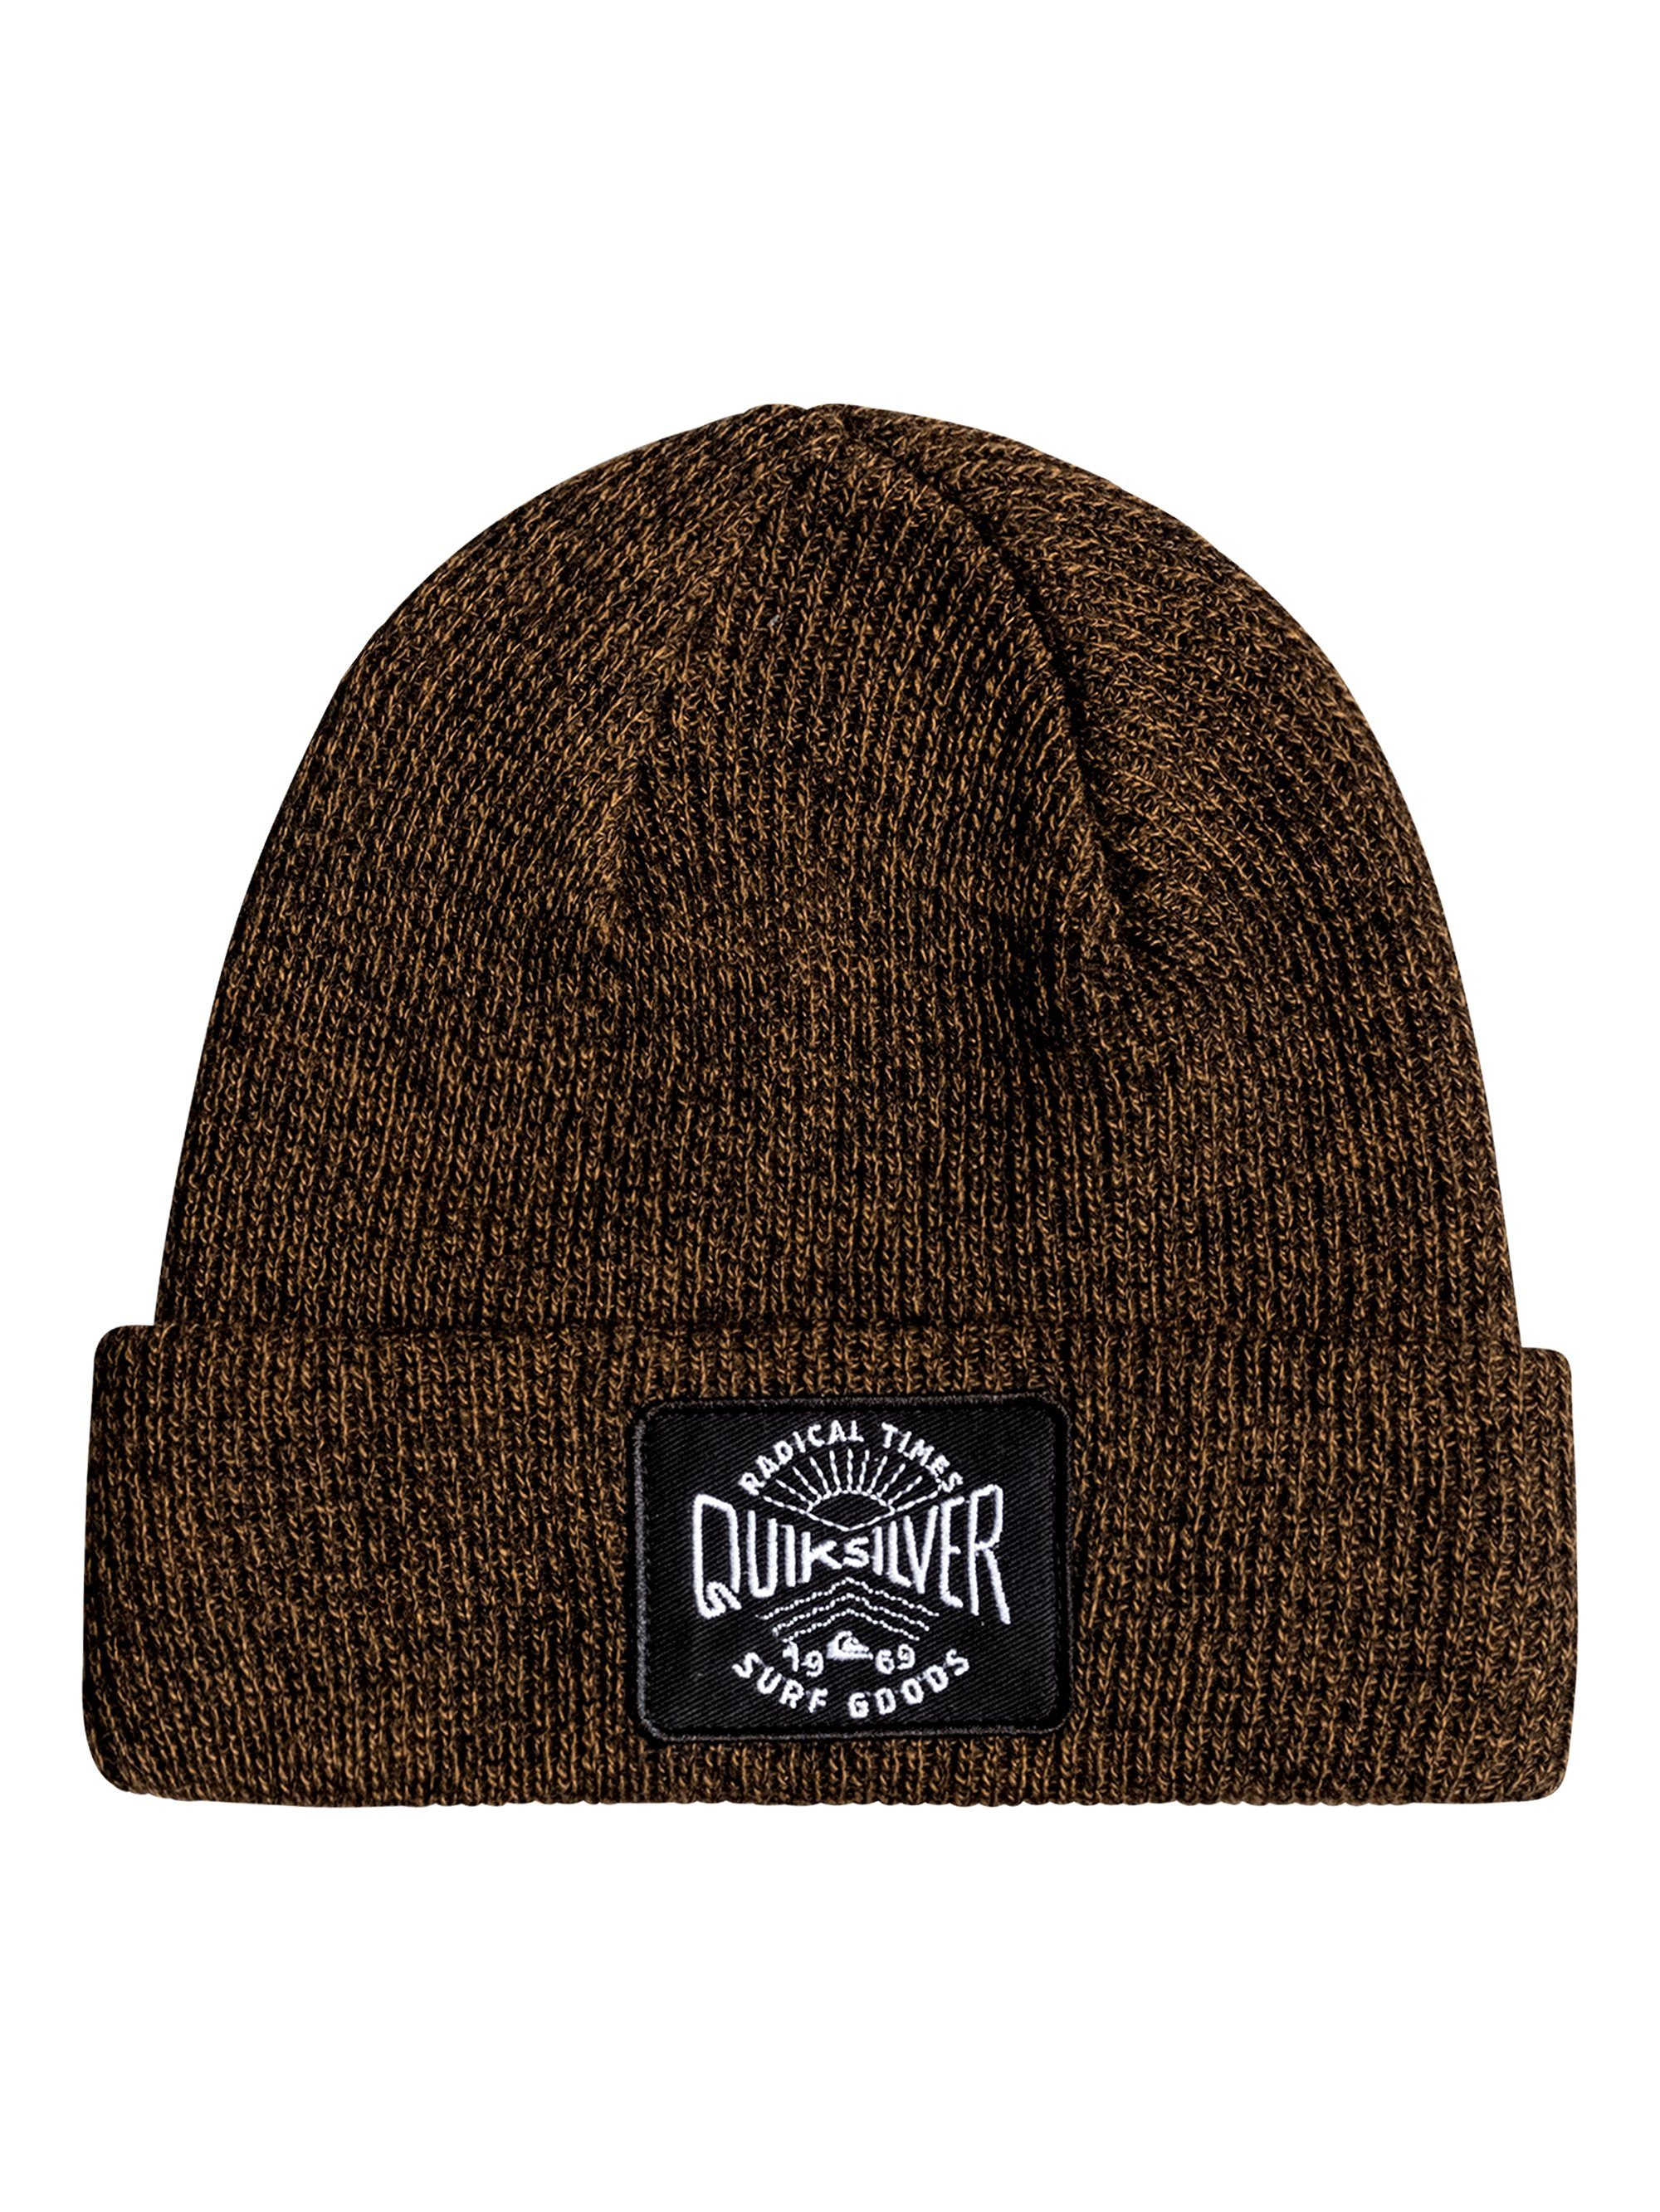 Quiksilver Beanie »Performed Patch«